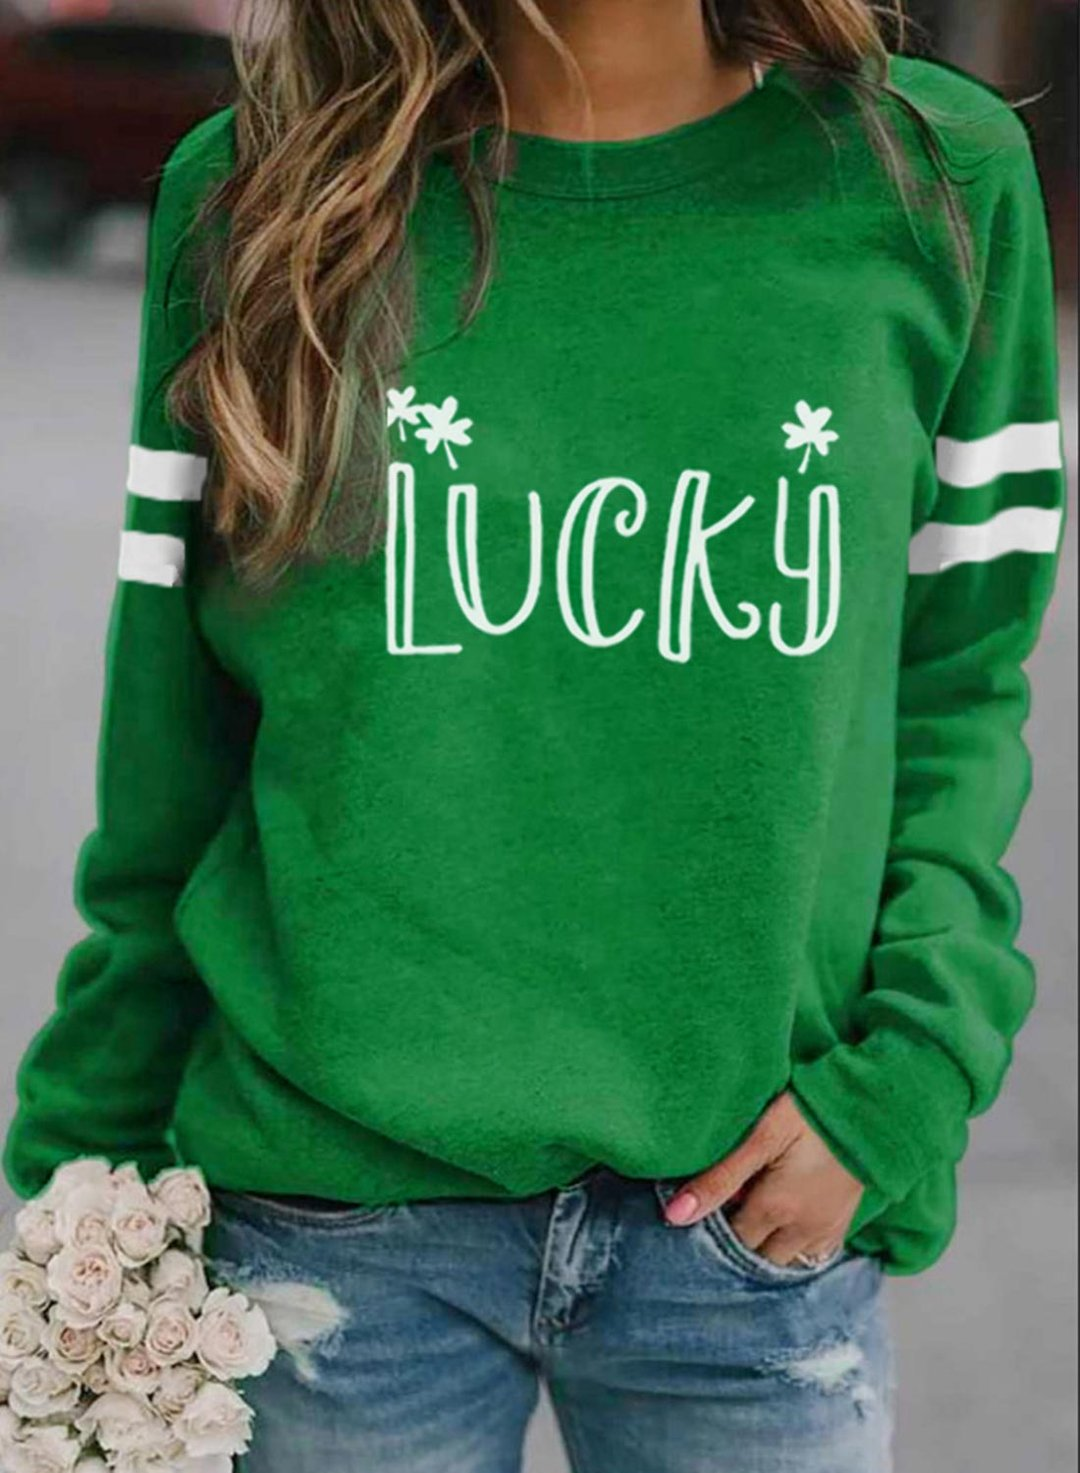 Green Women's Sweatshirts Letter Print Long Sleeve Round Neck Casual Sweatshirt LC2516425-9